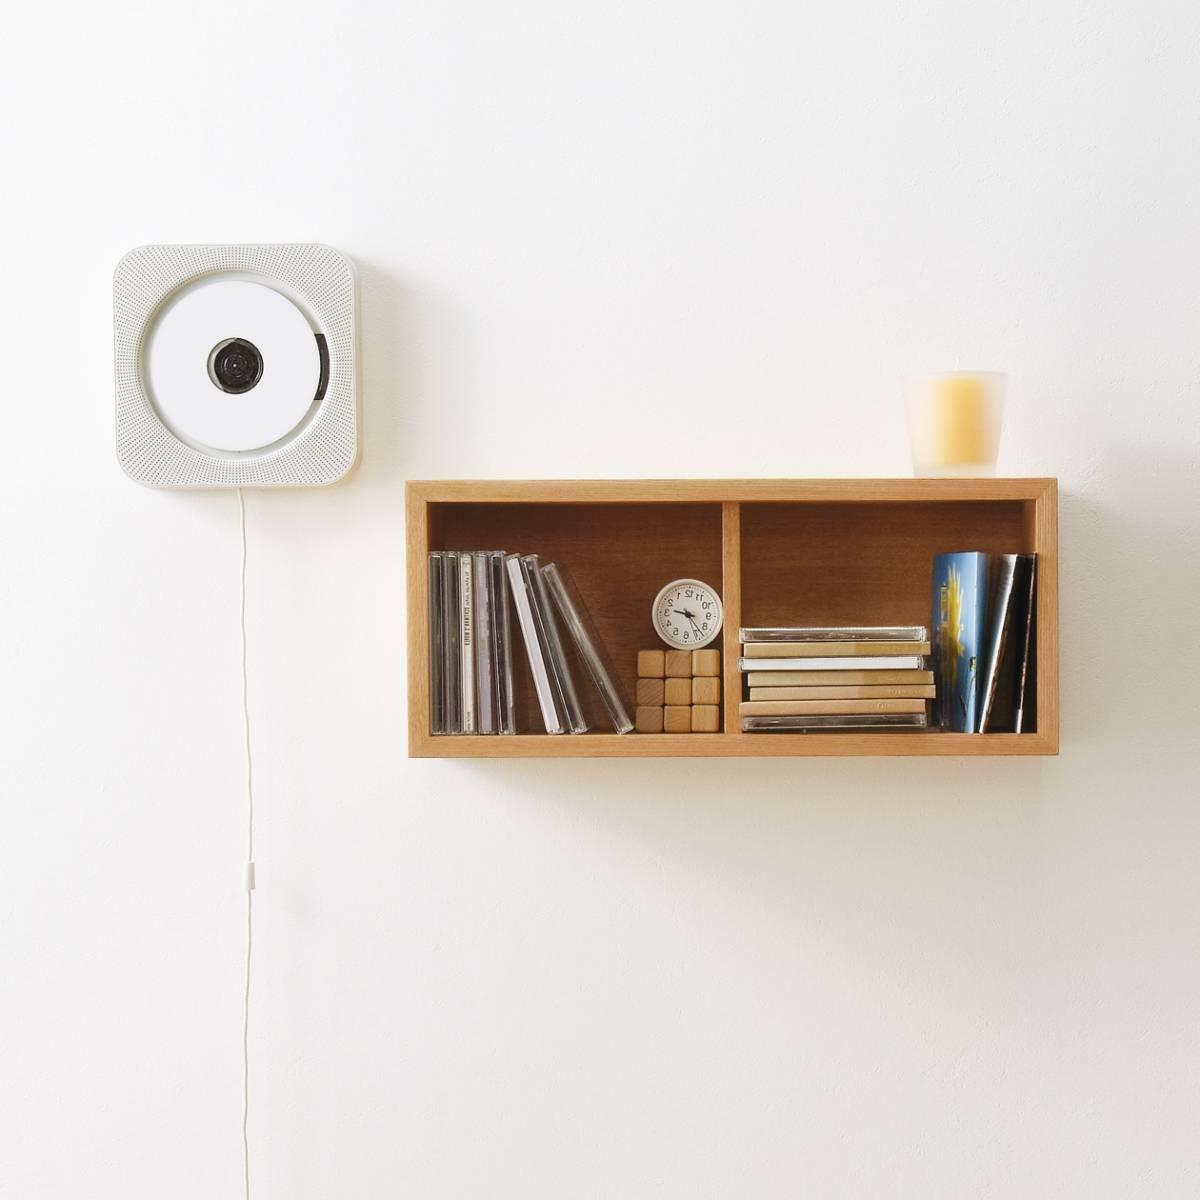 MUJI player FM radio CPD-4 F/S from